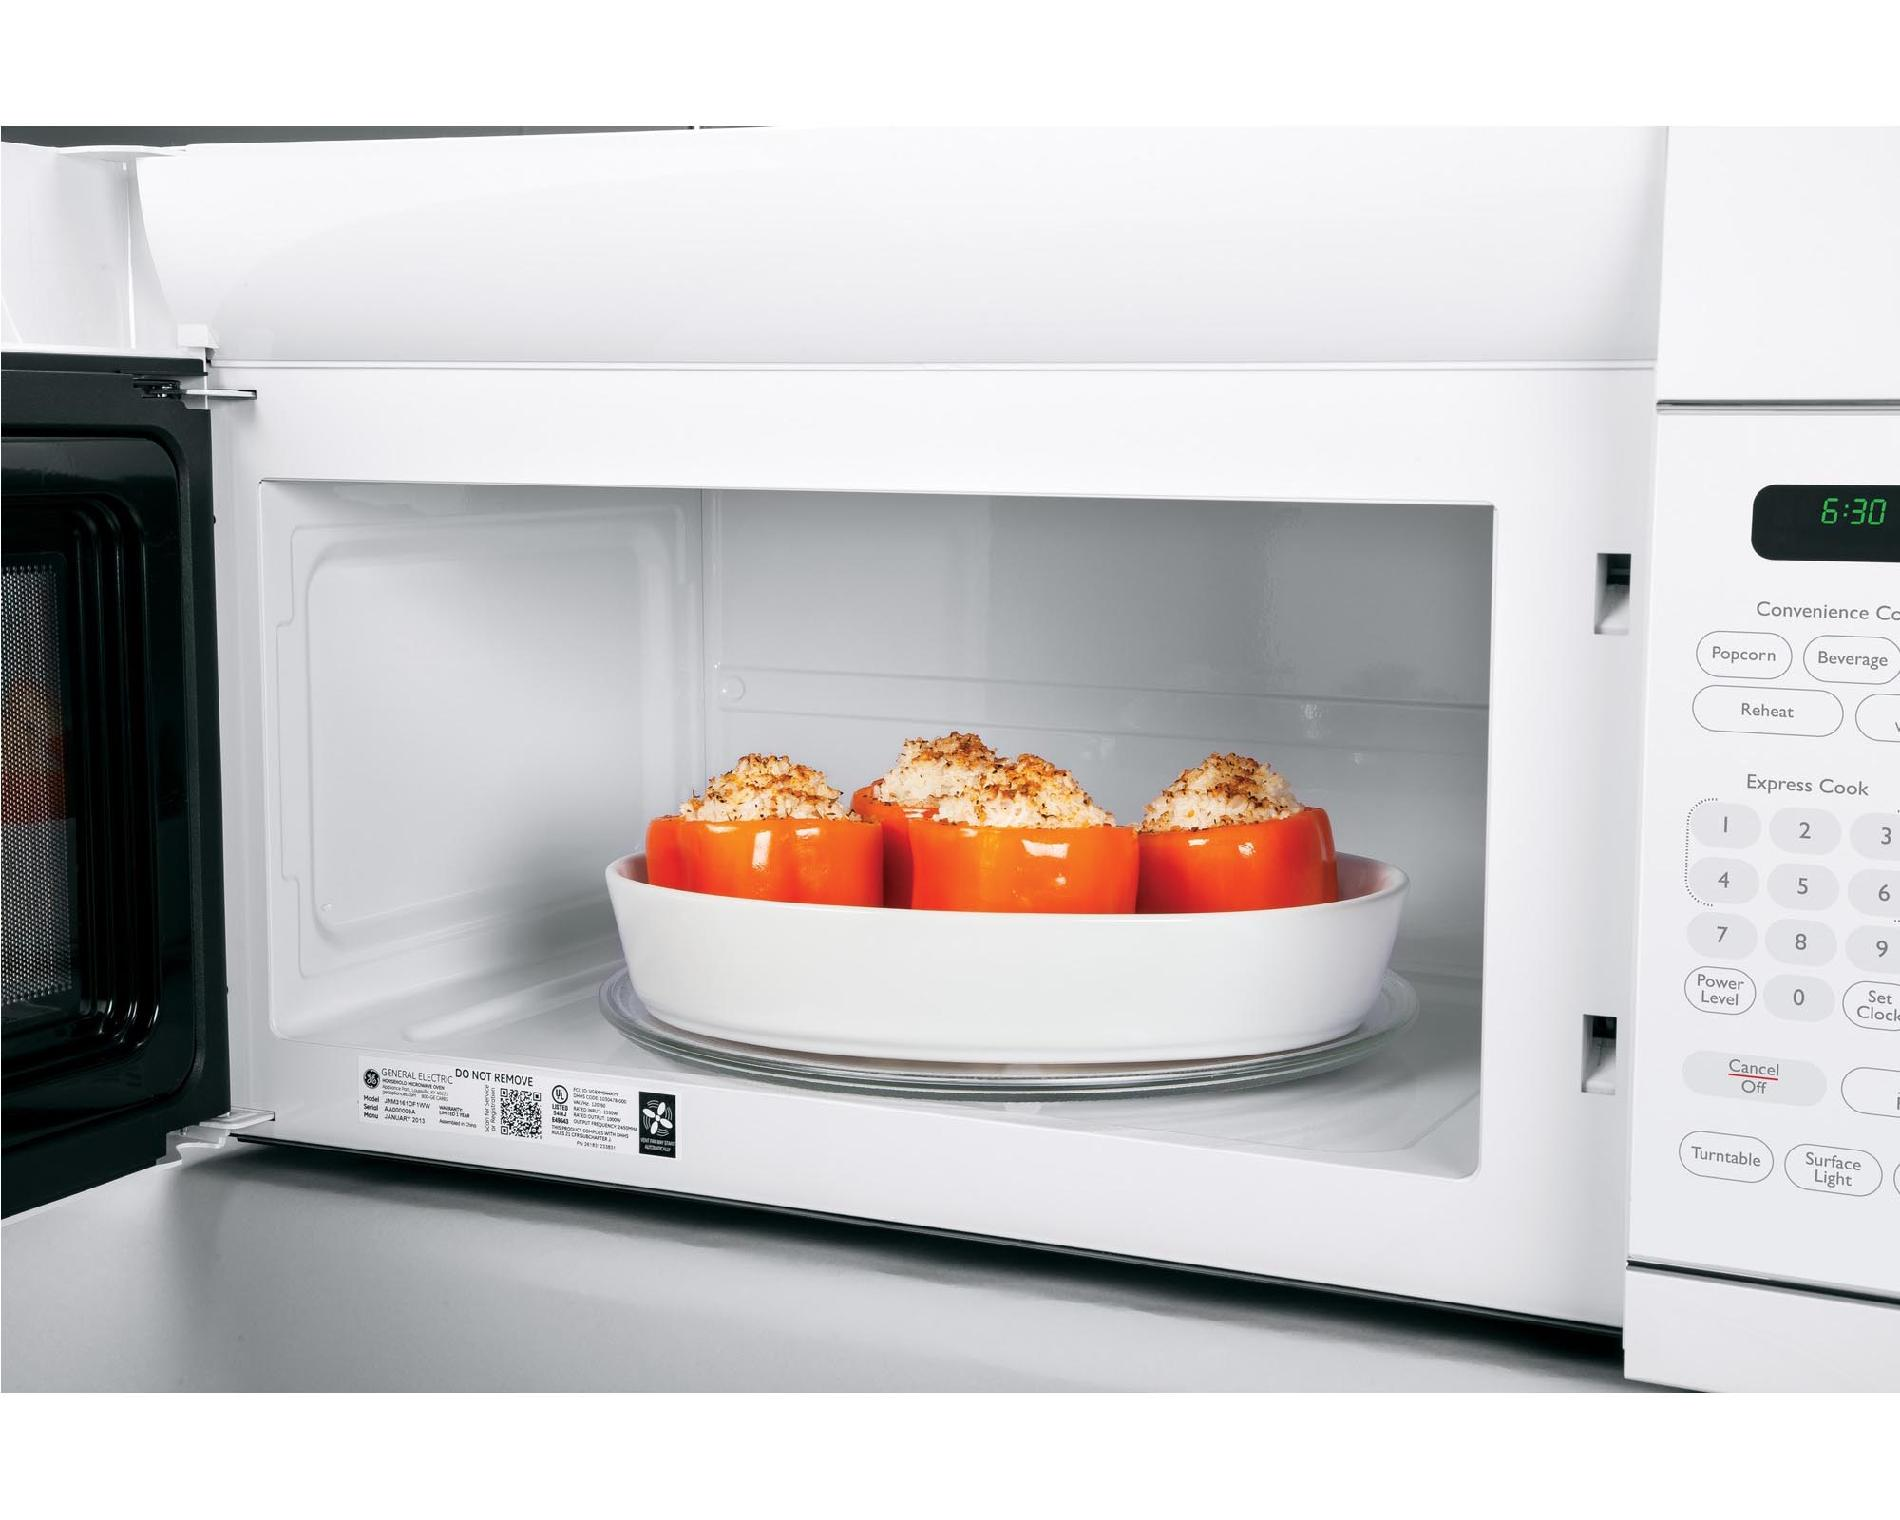 GE Artistry™ Series 1.6 cu. ft. Over-the-Range Microwave - White